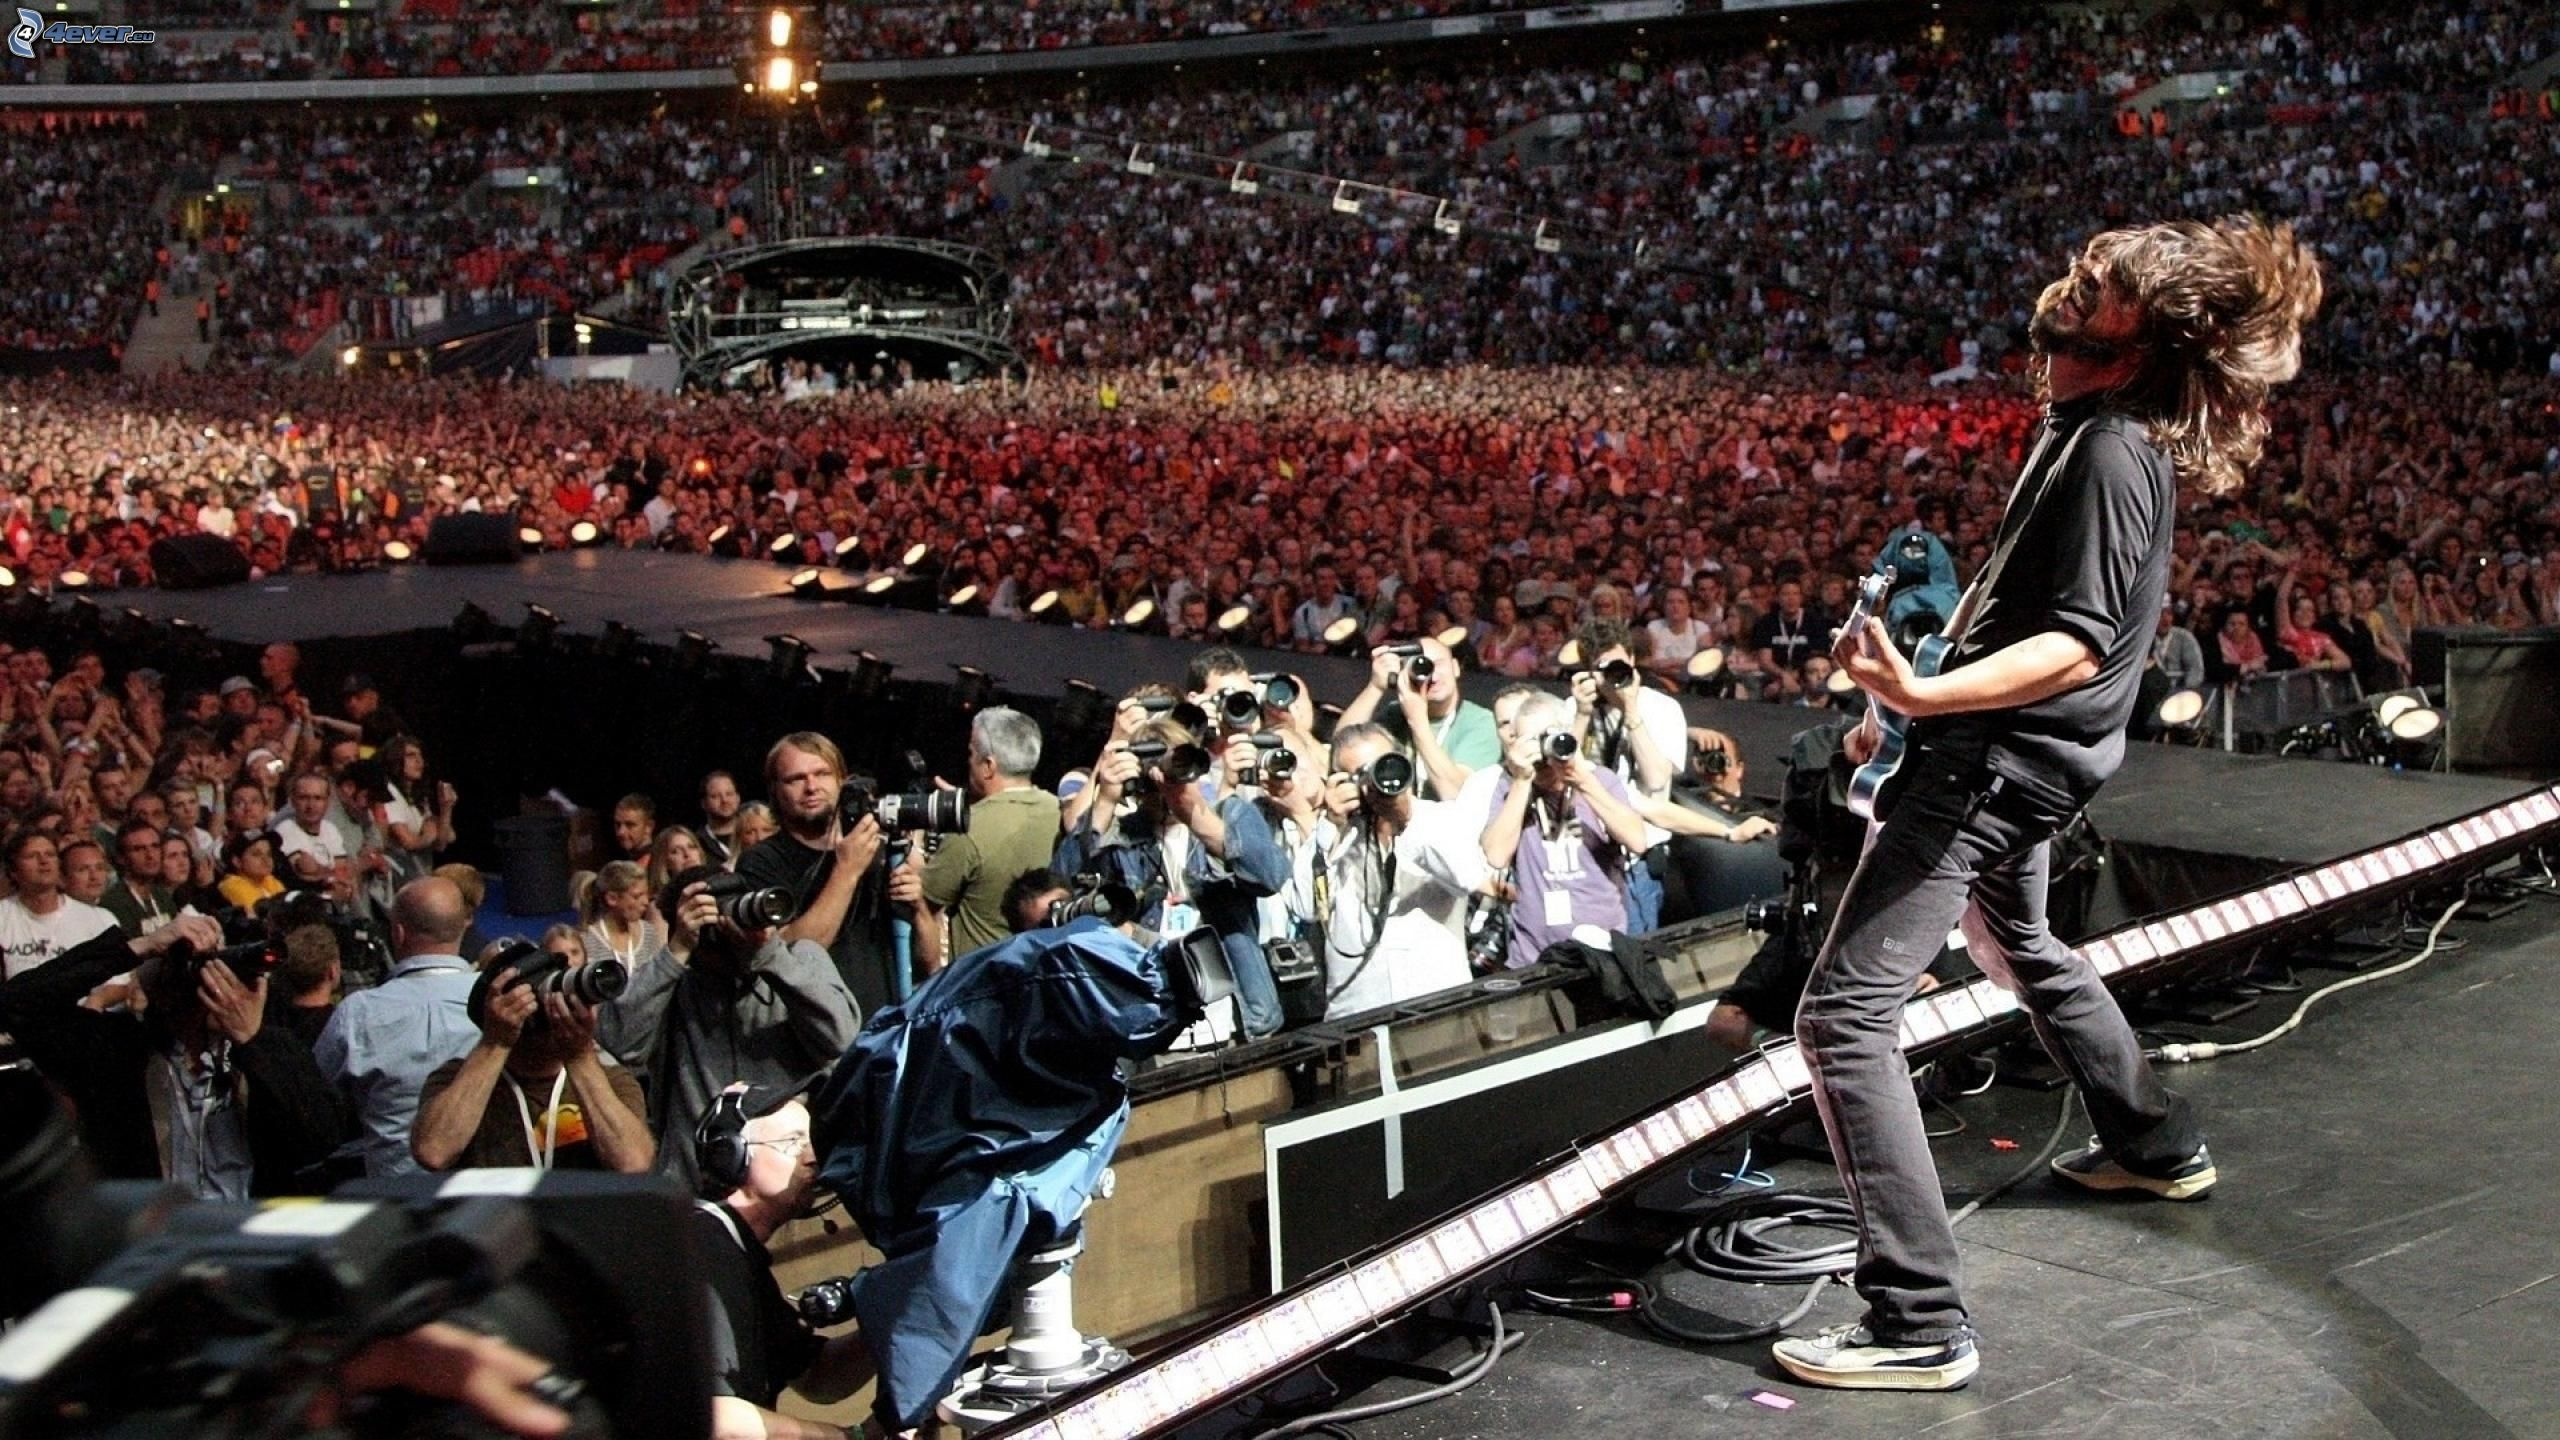 foo-fighters-concierto-megafiesta-168756